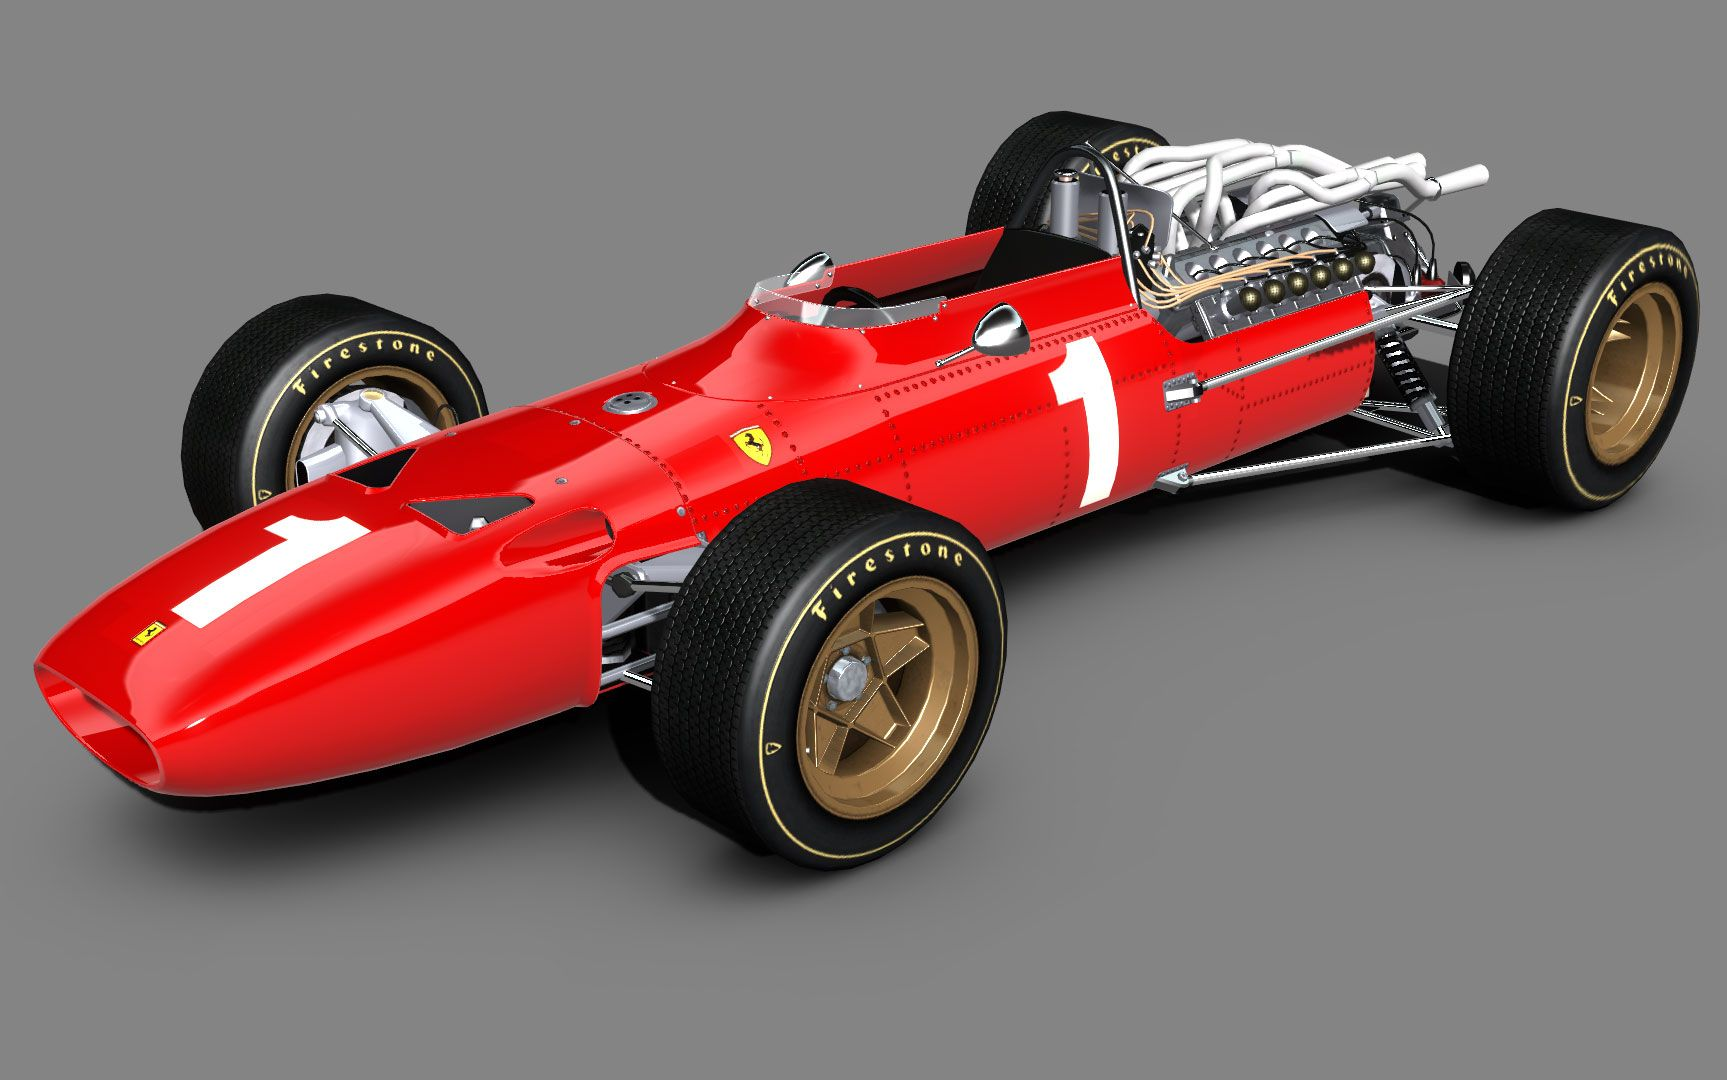 Test Drive Ferrari Racing Legends Vintage Race Car Photo 7 ...